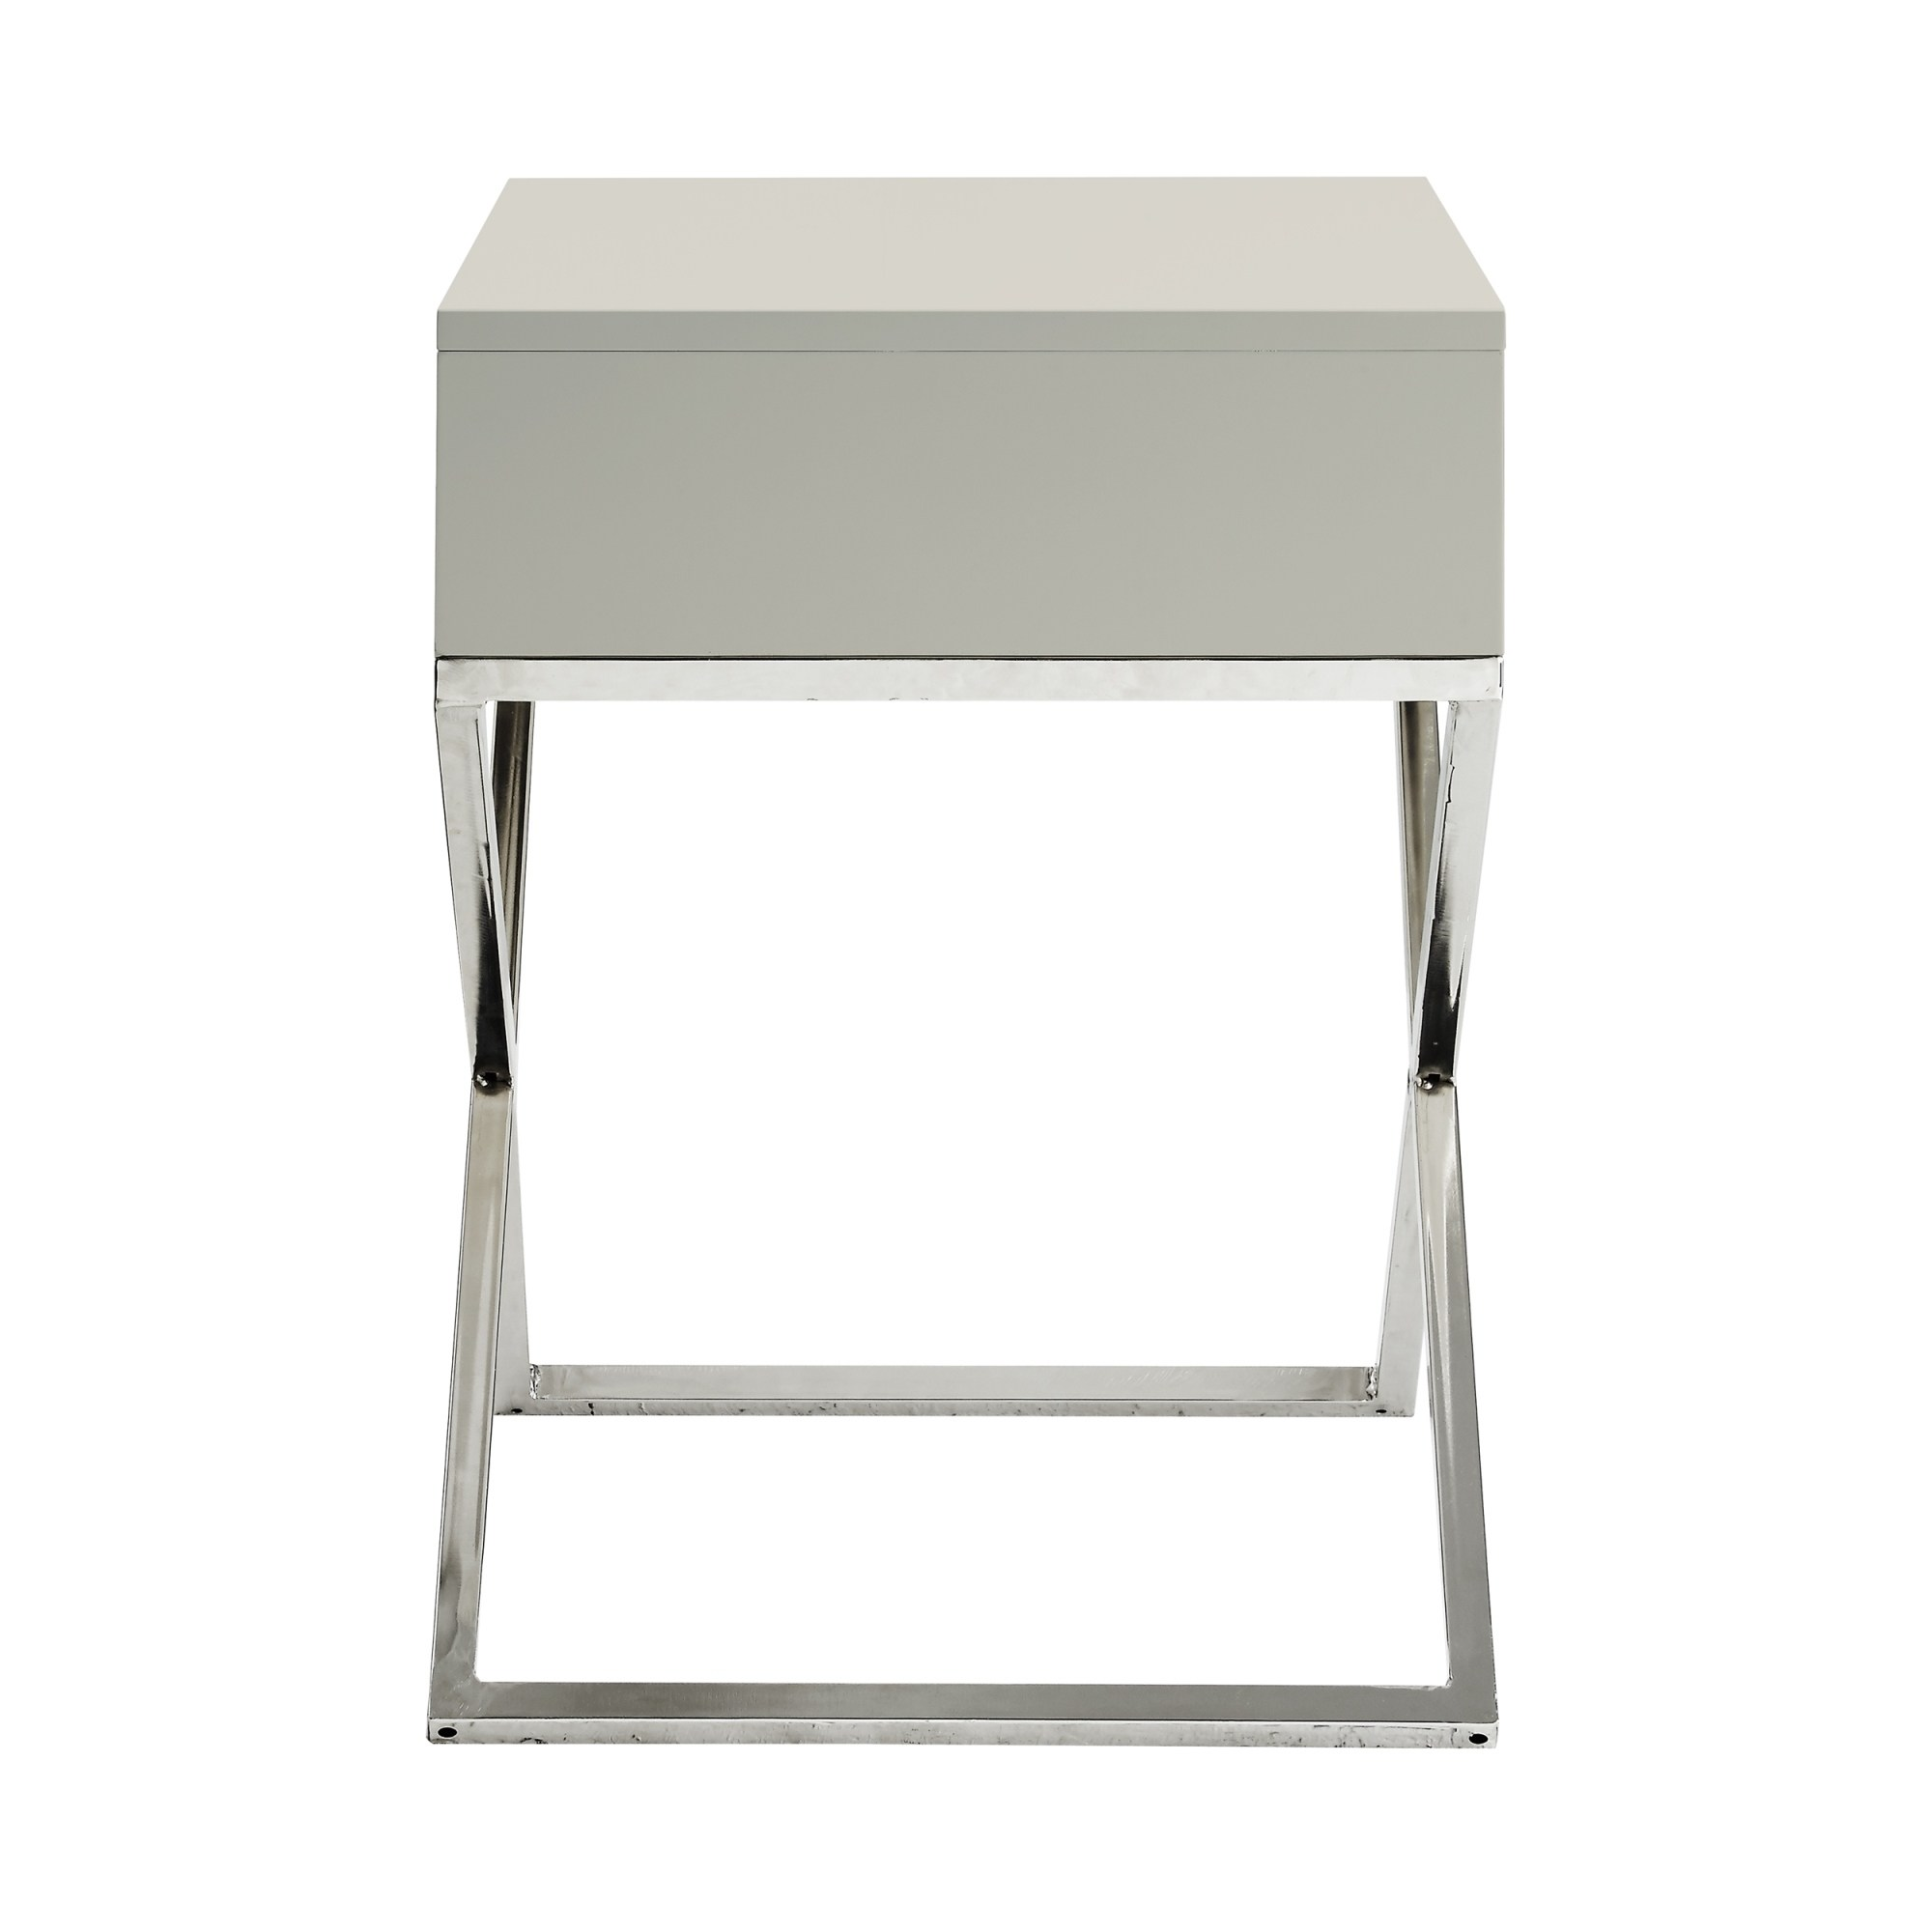 square lacquer legs end table accent nightstand with drawer white free shipping today acrylic snack set round coffee tables outdoor furniture cushions unique tablecloths cement